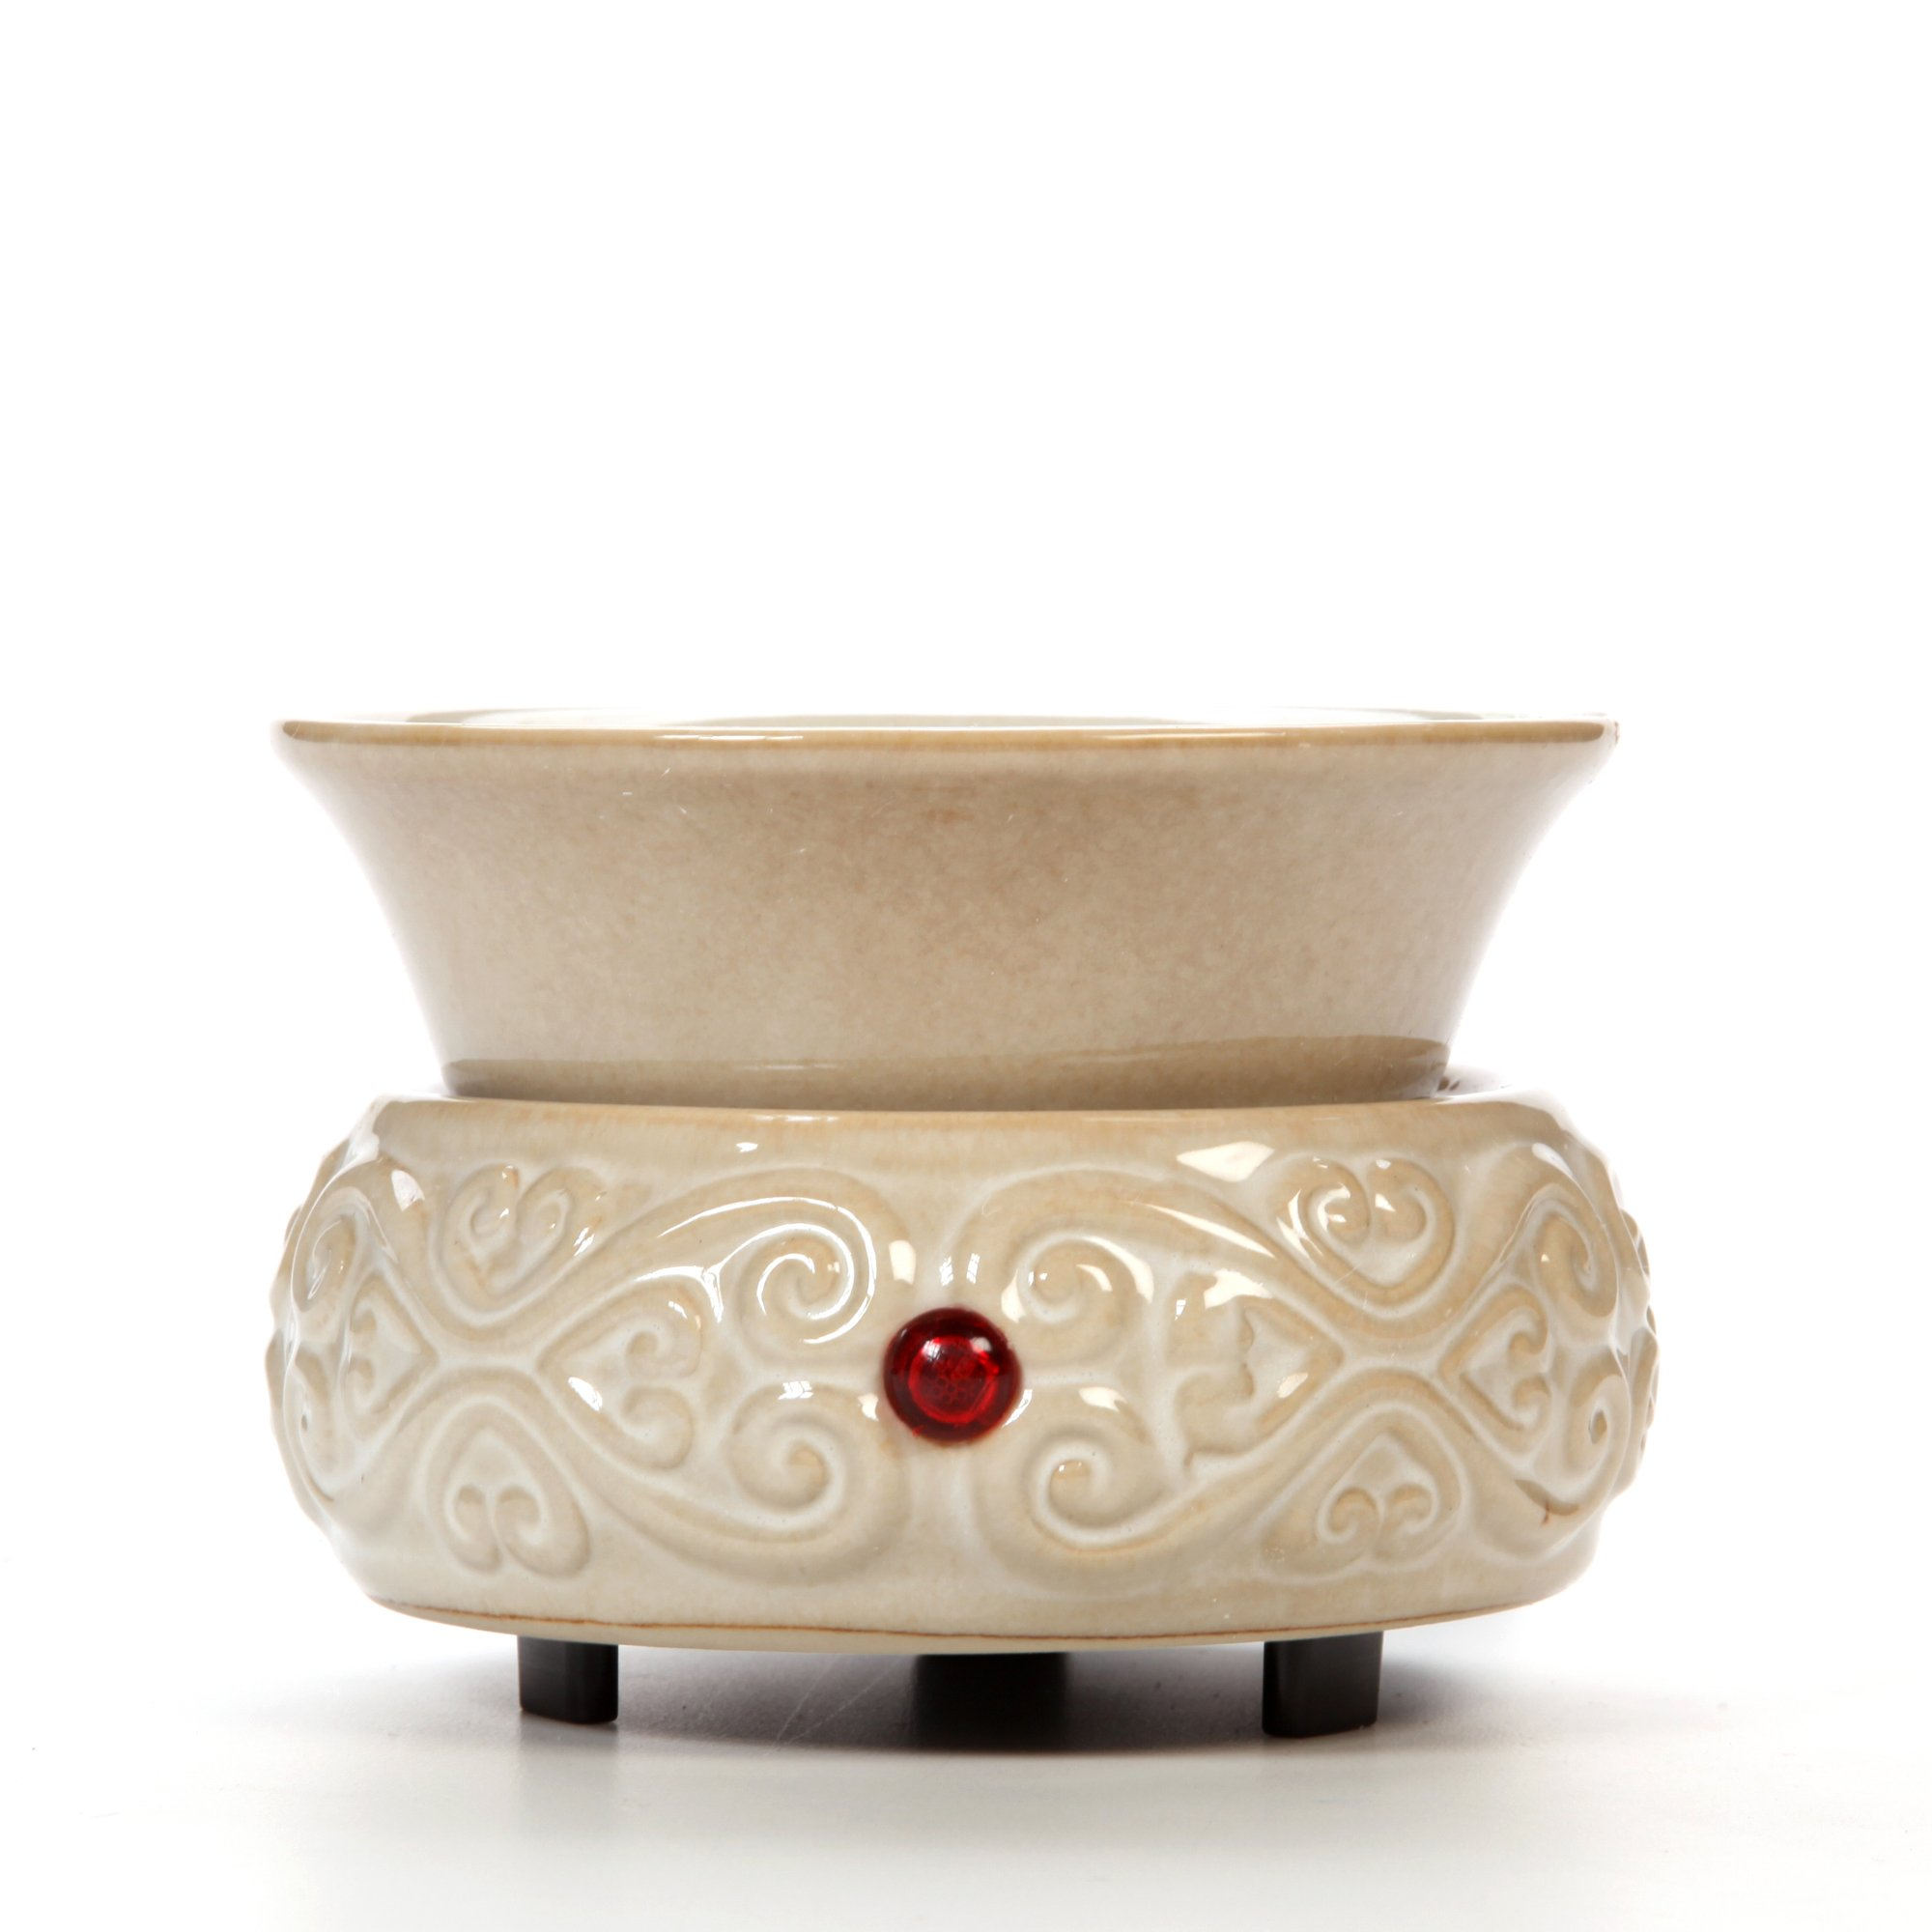 Hosley Hosley's Cream Ceramic Fragrance Candle Wax Warmer. Ideal for Spa and Aromatherapy. Use with Brand Wax Melts/Cubes, Essential Oils and Fragrance Oils O2